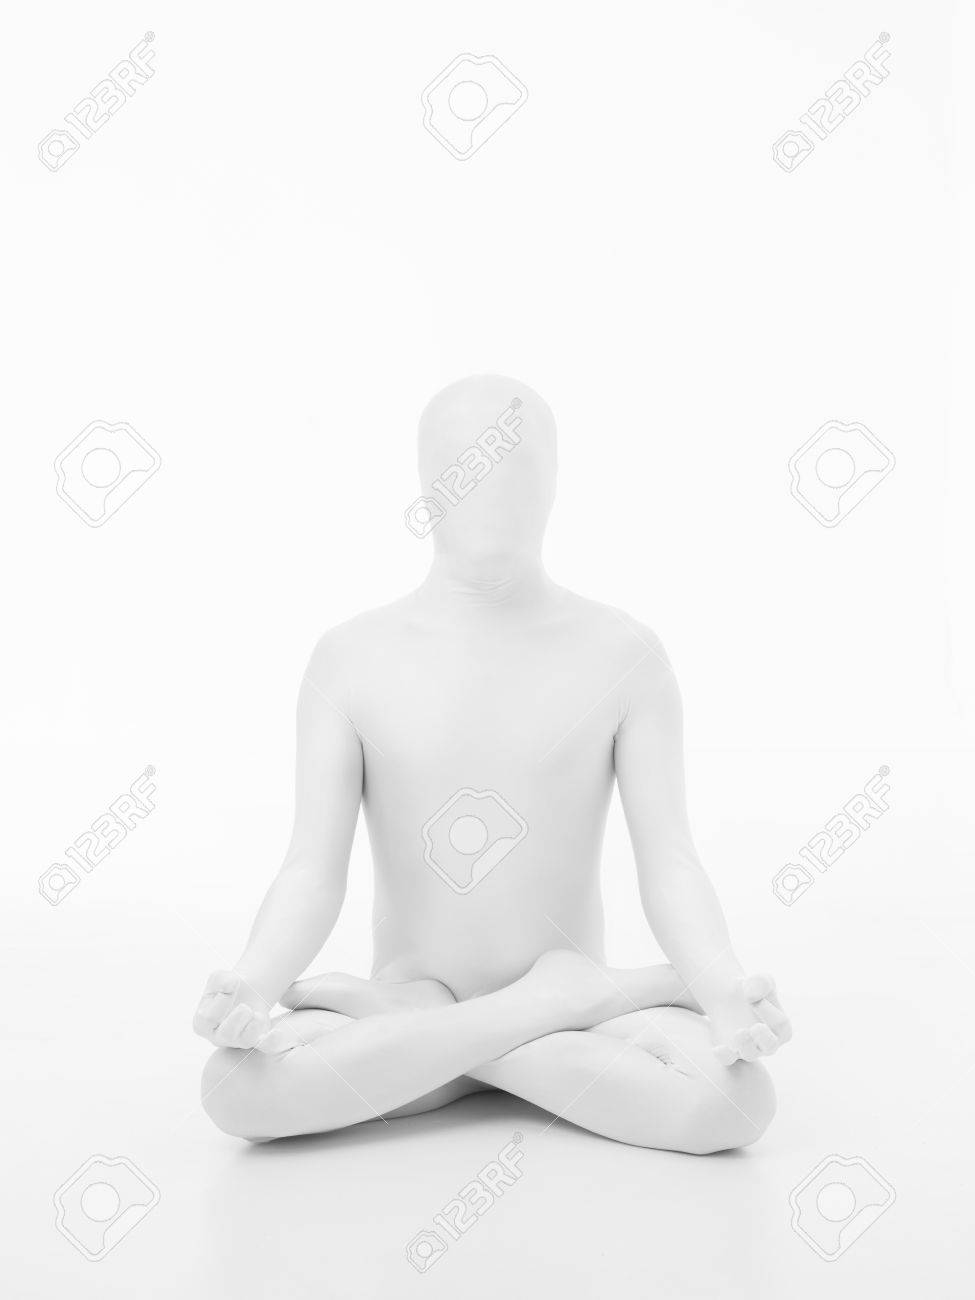 faceless man dressed in white sitting in yoga lotus position, front view Stock Photo - 28075846